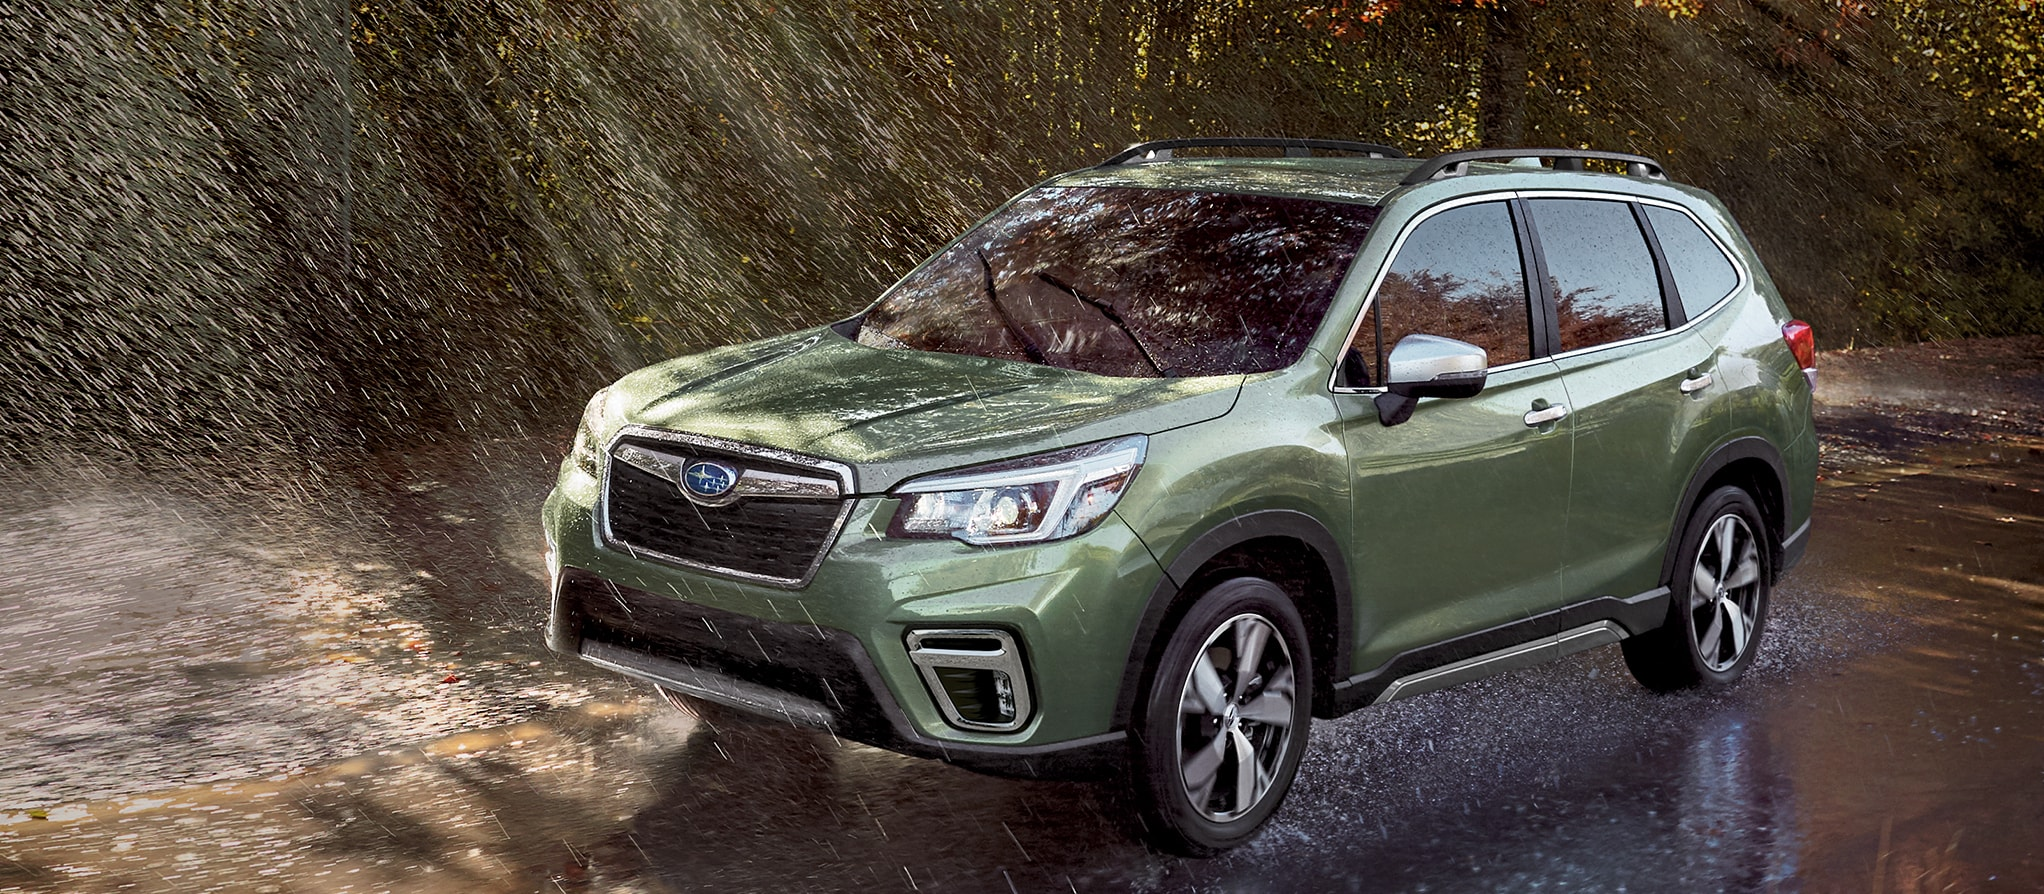 Compare the Forester in Helena